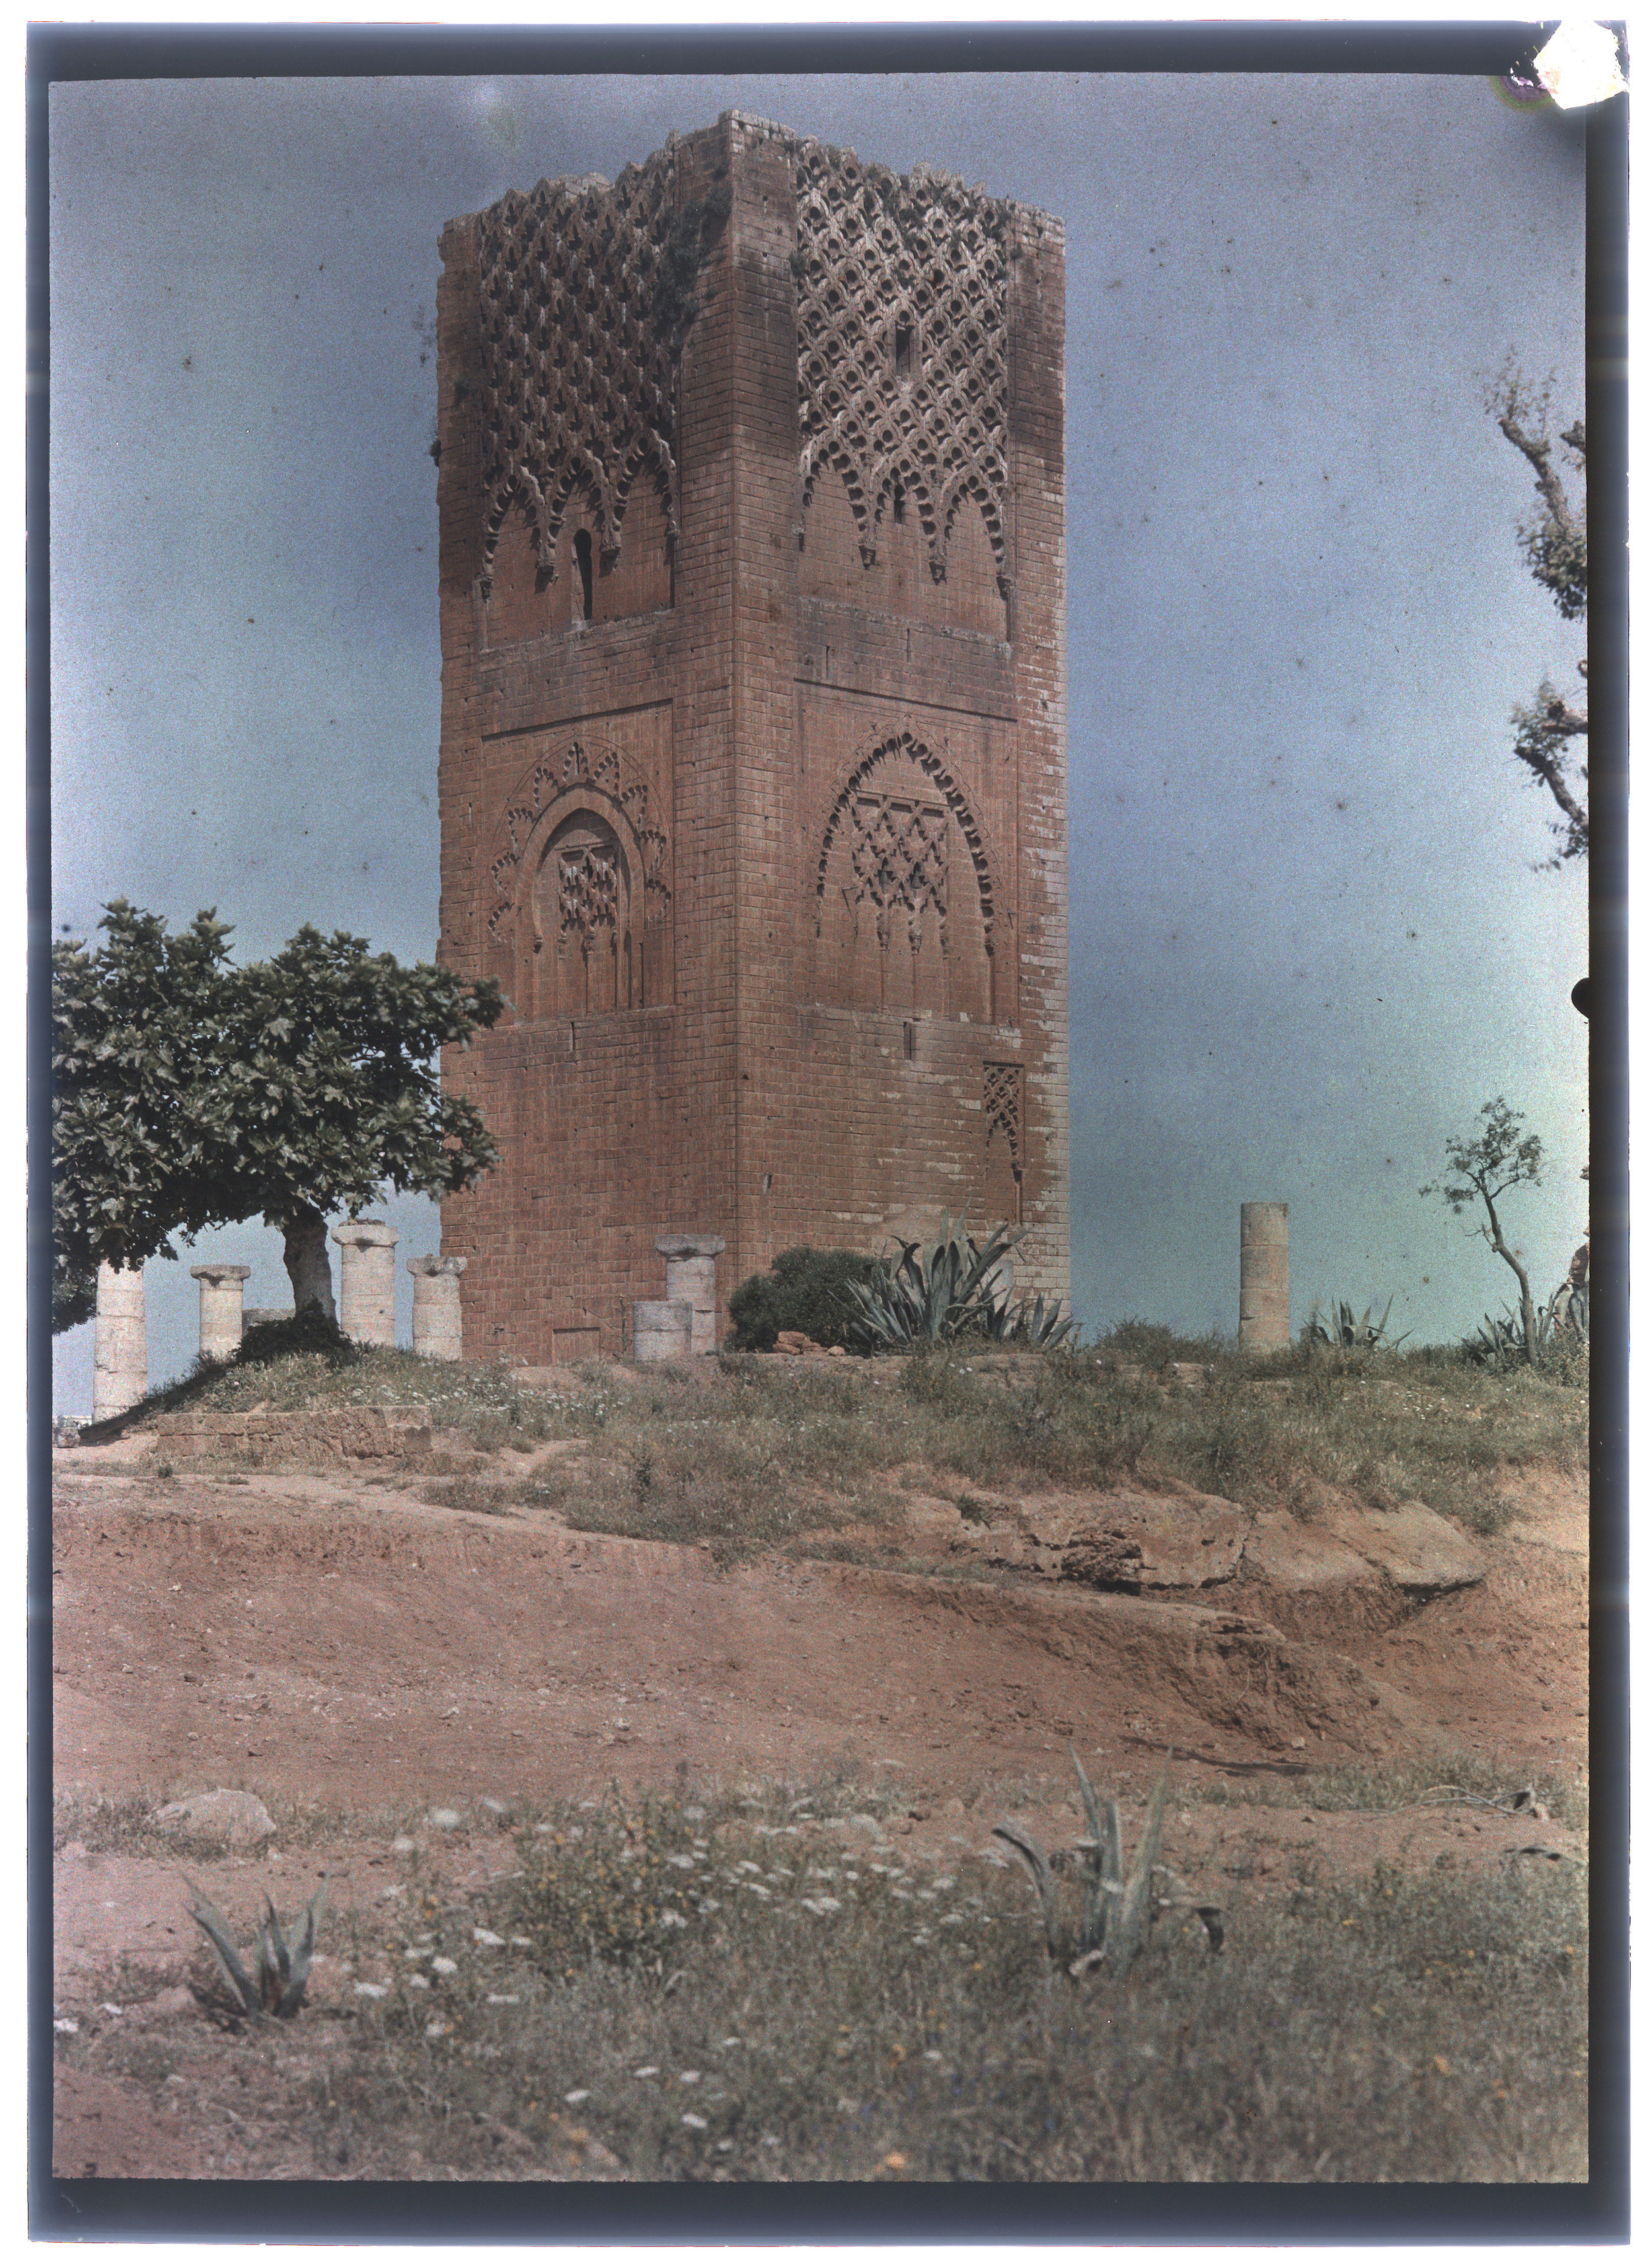 I also appreciated the way sites were illustrated with the oldest extant photographs or slides. Here is a 1937 photograph of the Tour Hassan, built centuries before as part of a monumental mosque that was never completed, in Rabat. i wish the site was still this charmingly wild.